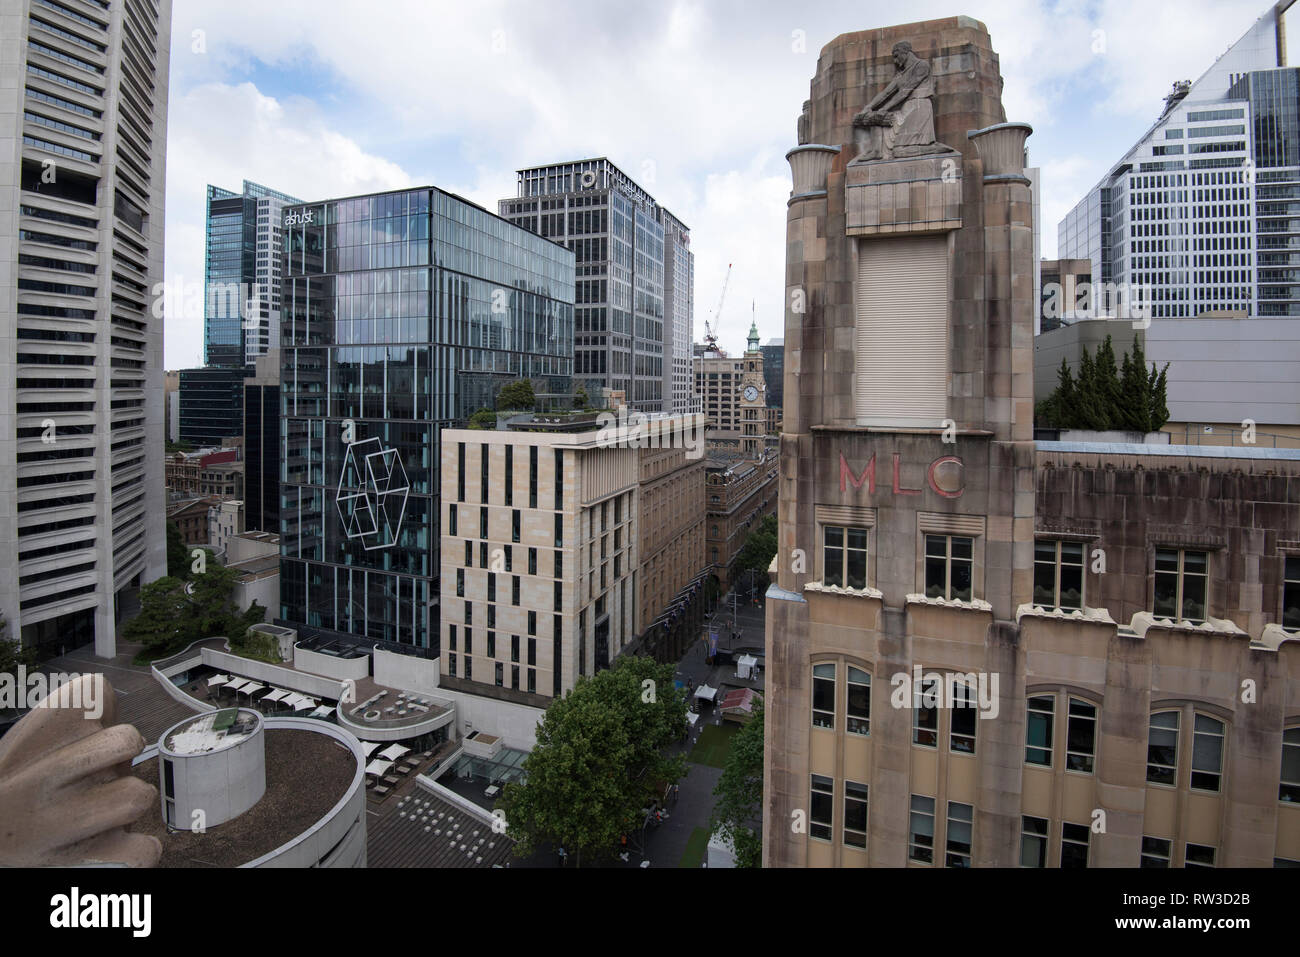 Looking down from above on the forecourt area of the Harry Seidler designed MLC tower and Martin Place towards the GPO clock tower, Sydney Australia - Stock Image